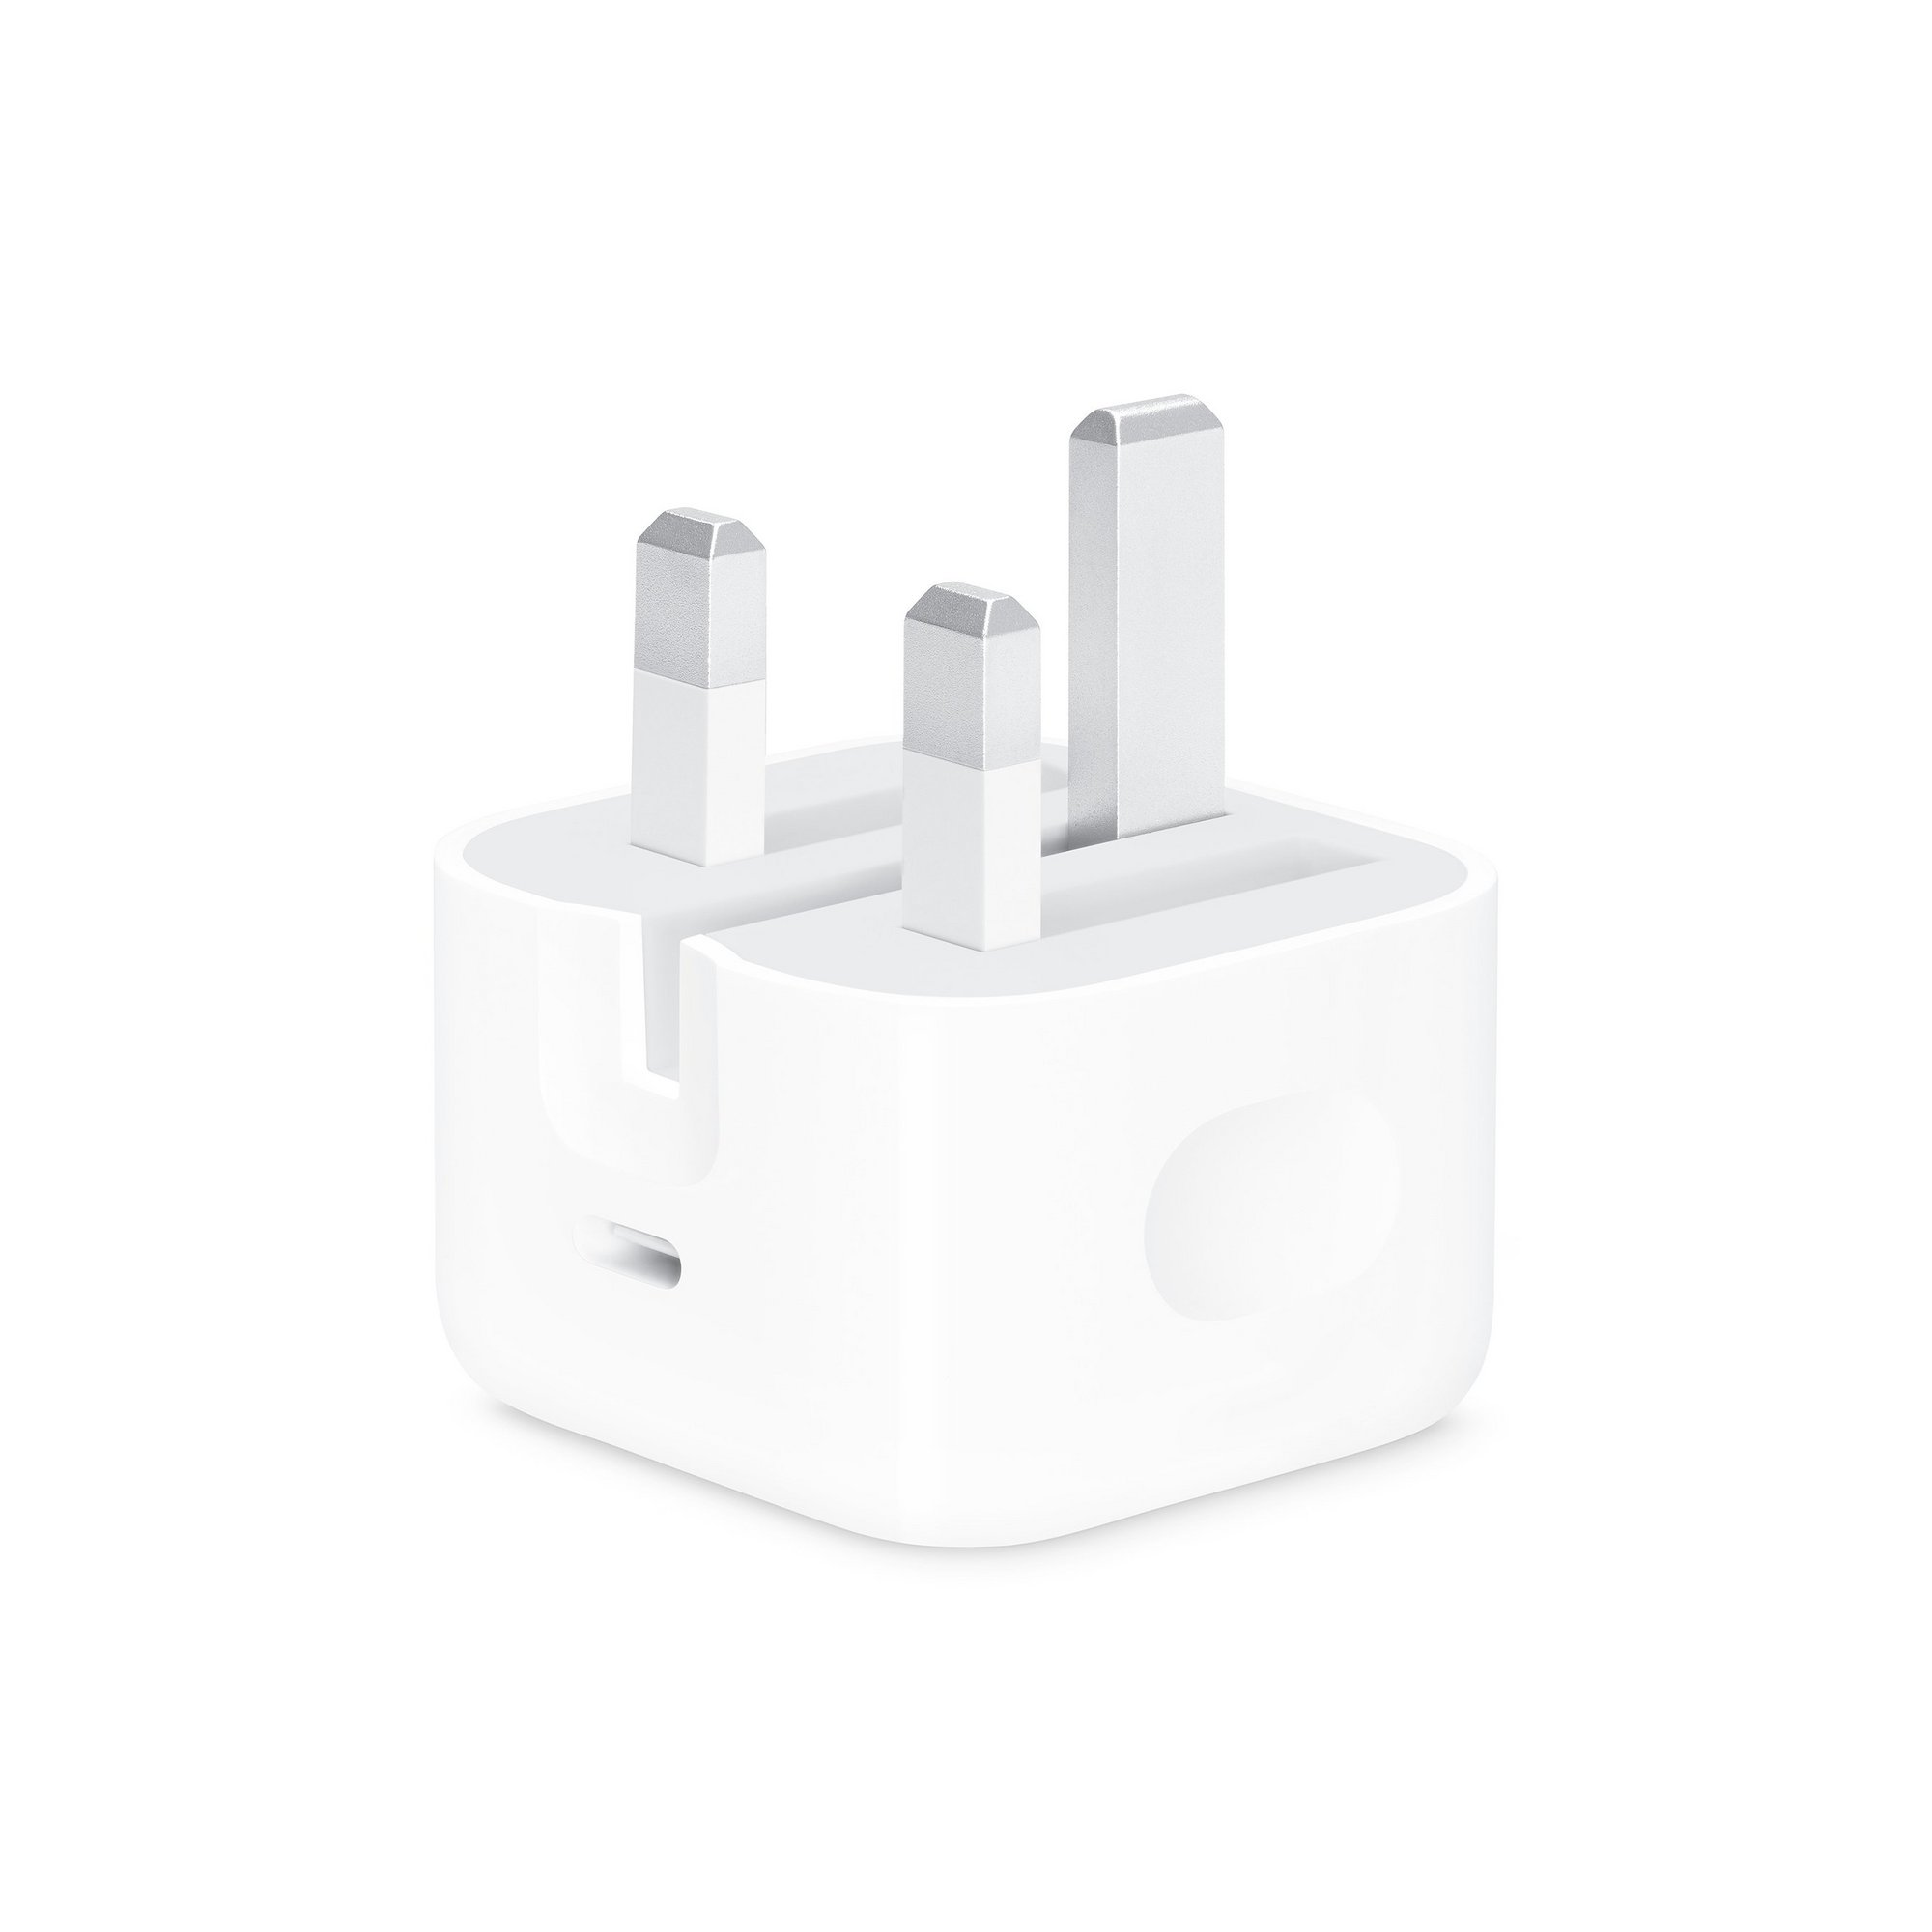 Image of Apple 20W USB-C Power Adapter